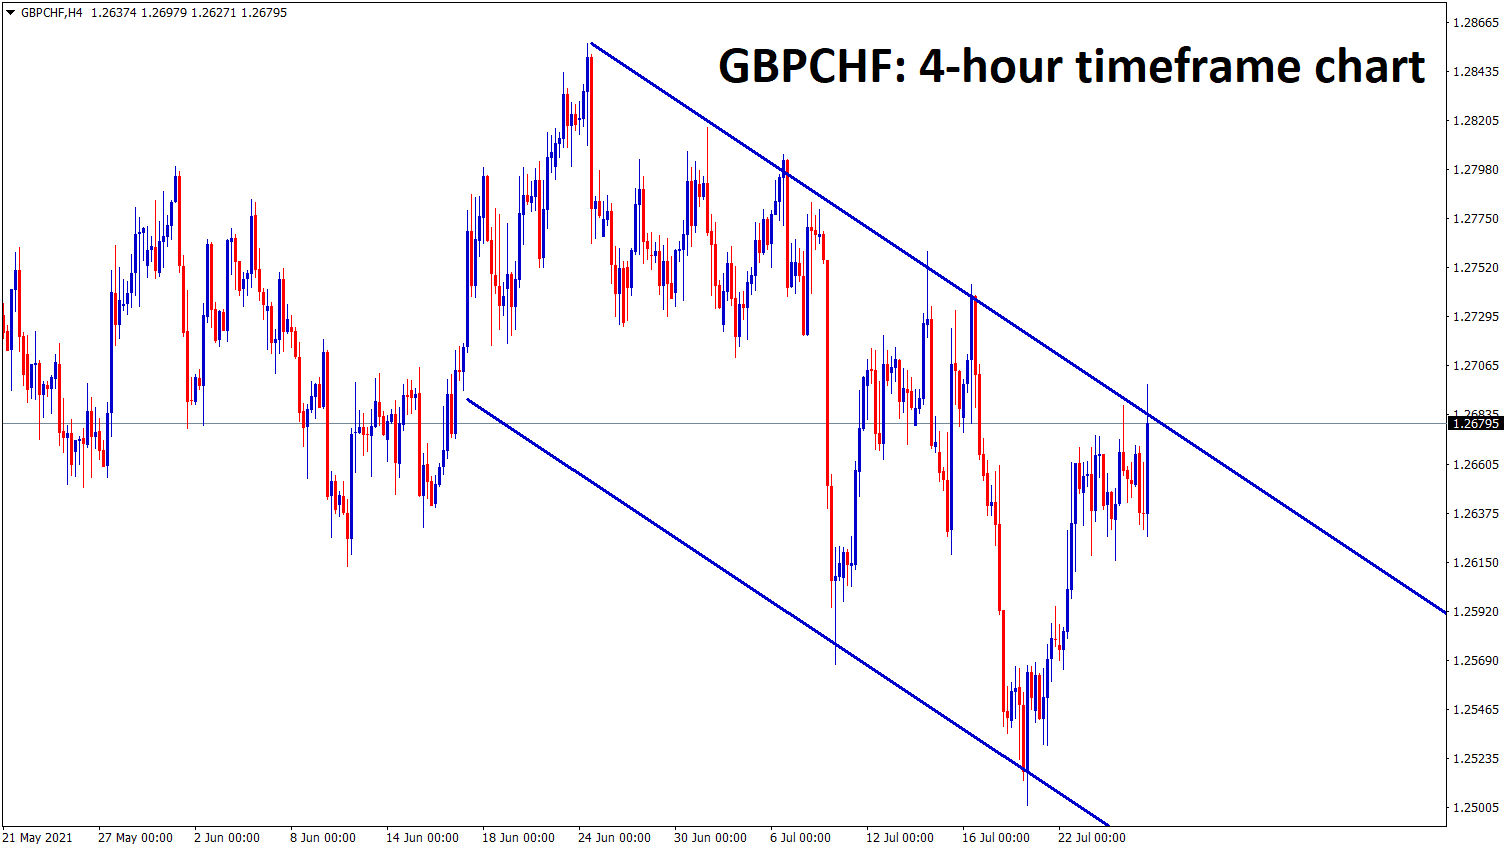 GBPCHF is moving in a descending channel wait for the breakout or reversal confirmation